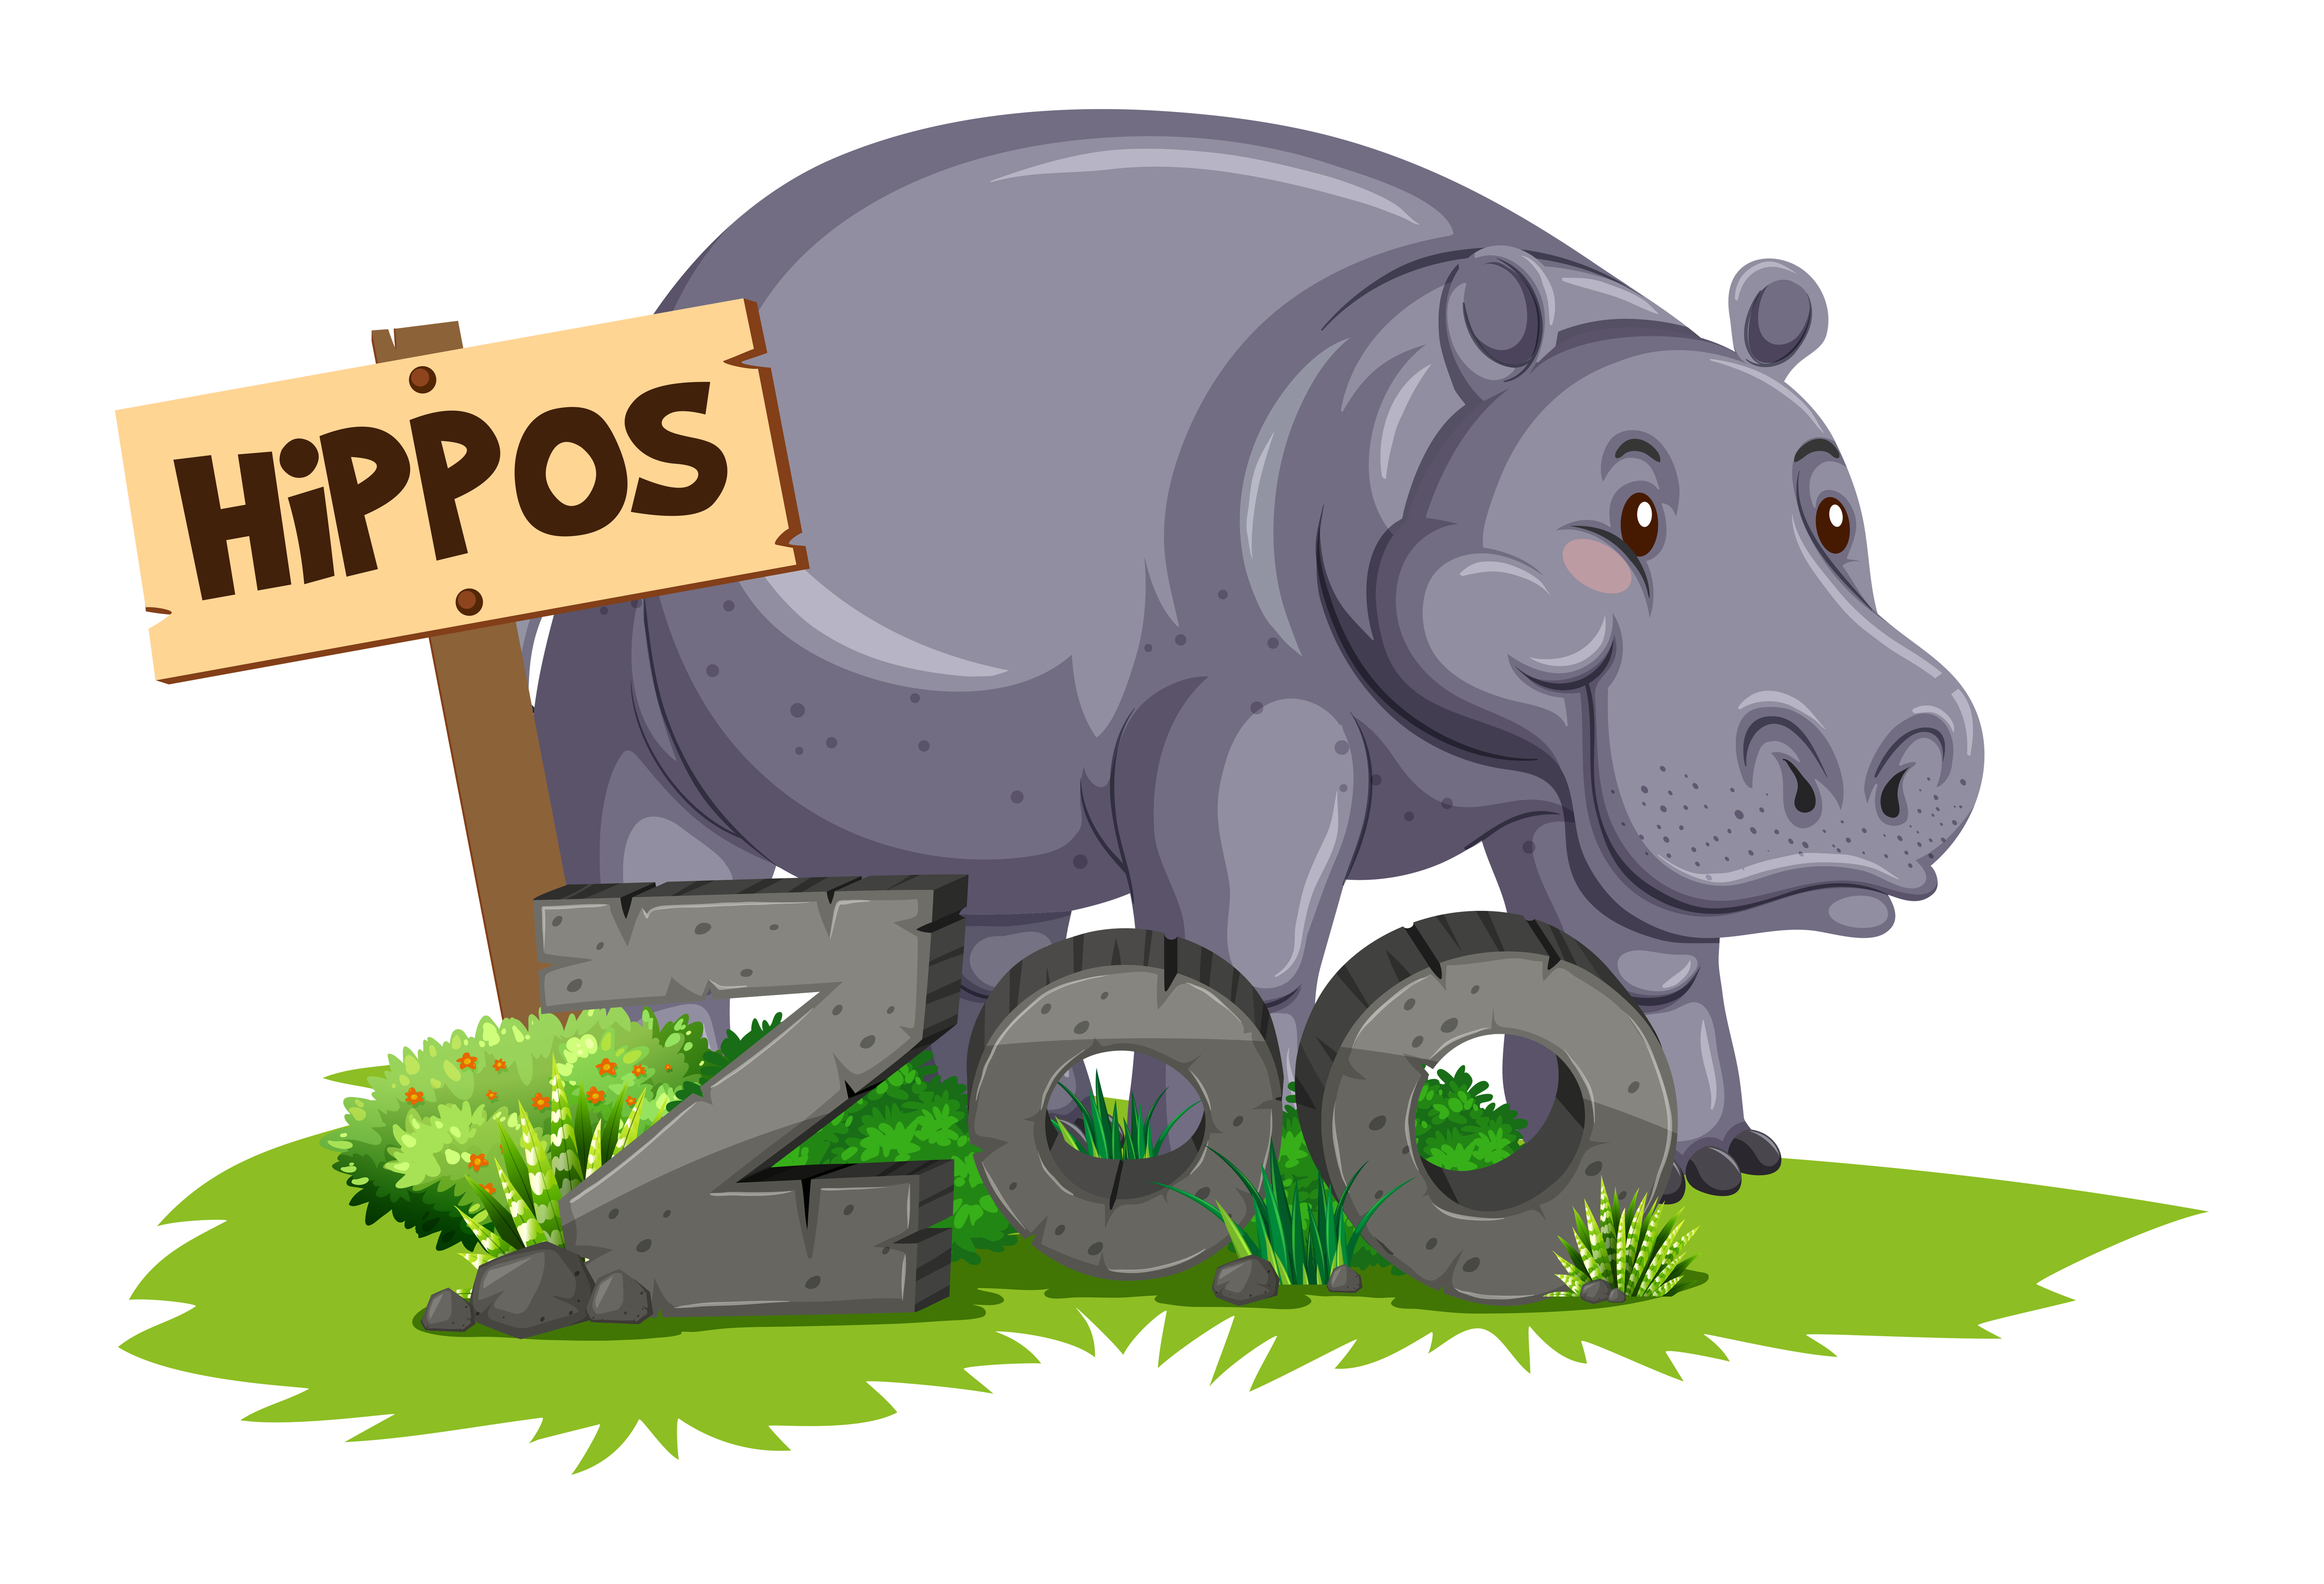 Wild hippo at the zoo - Download Free Vectors, Clipart ...